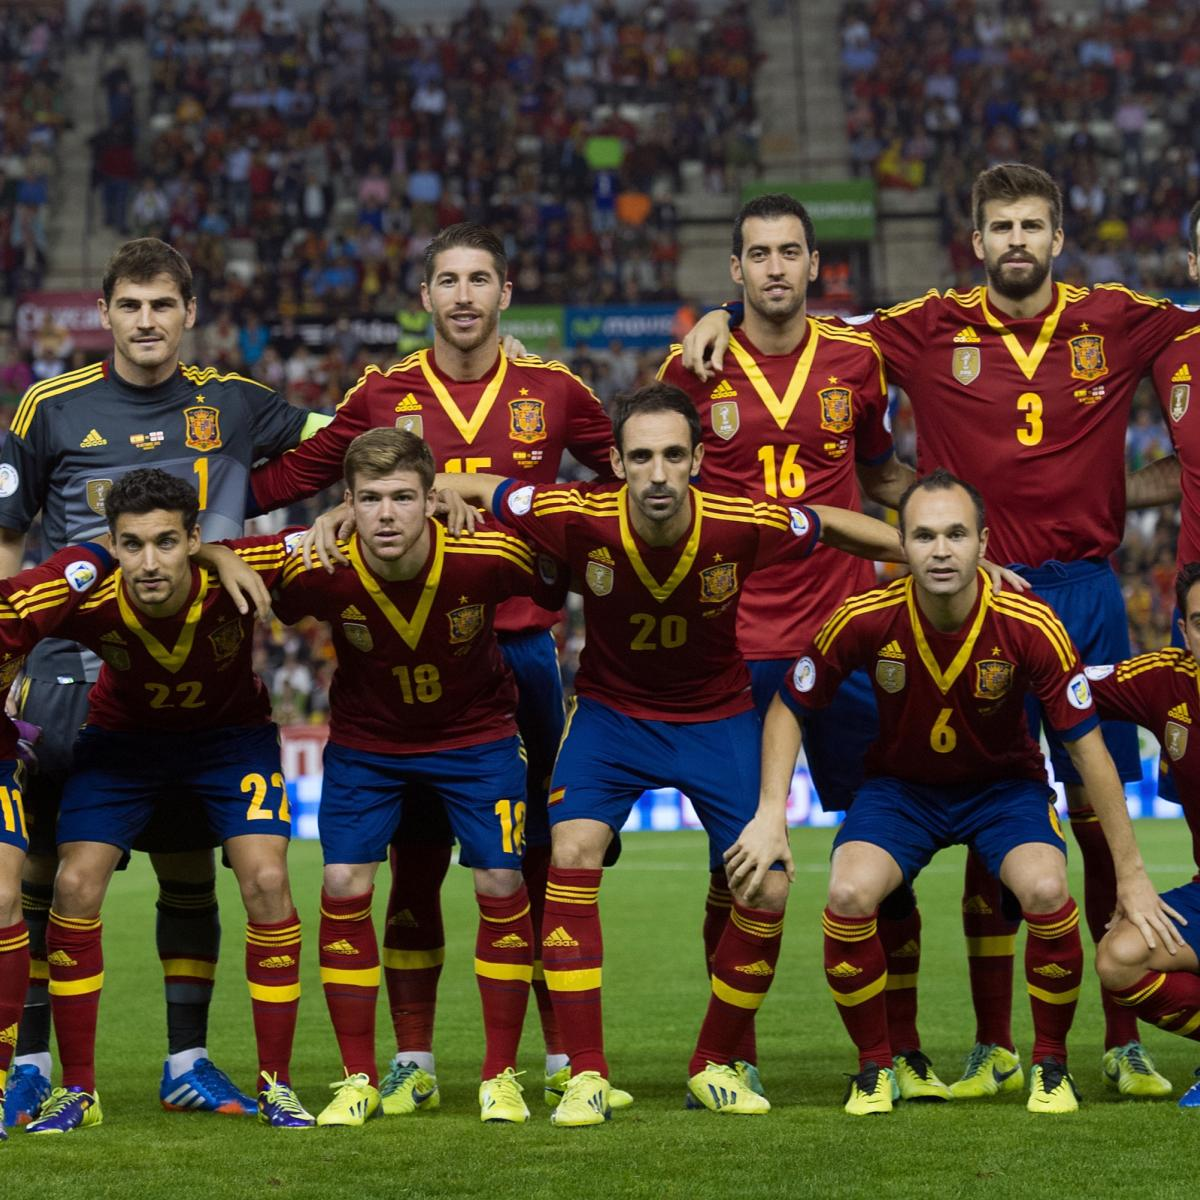 76fe7495678 Spain World Cup Roster 2014  Updates on 23-Man Squad and Starting XI  Projections